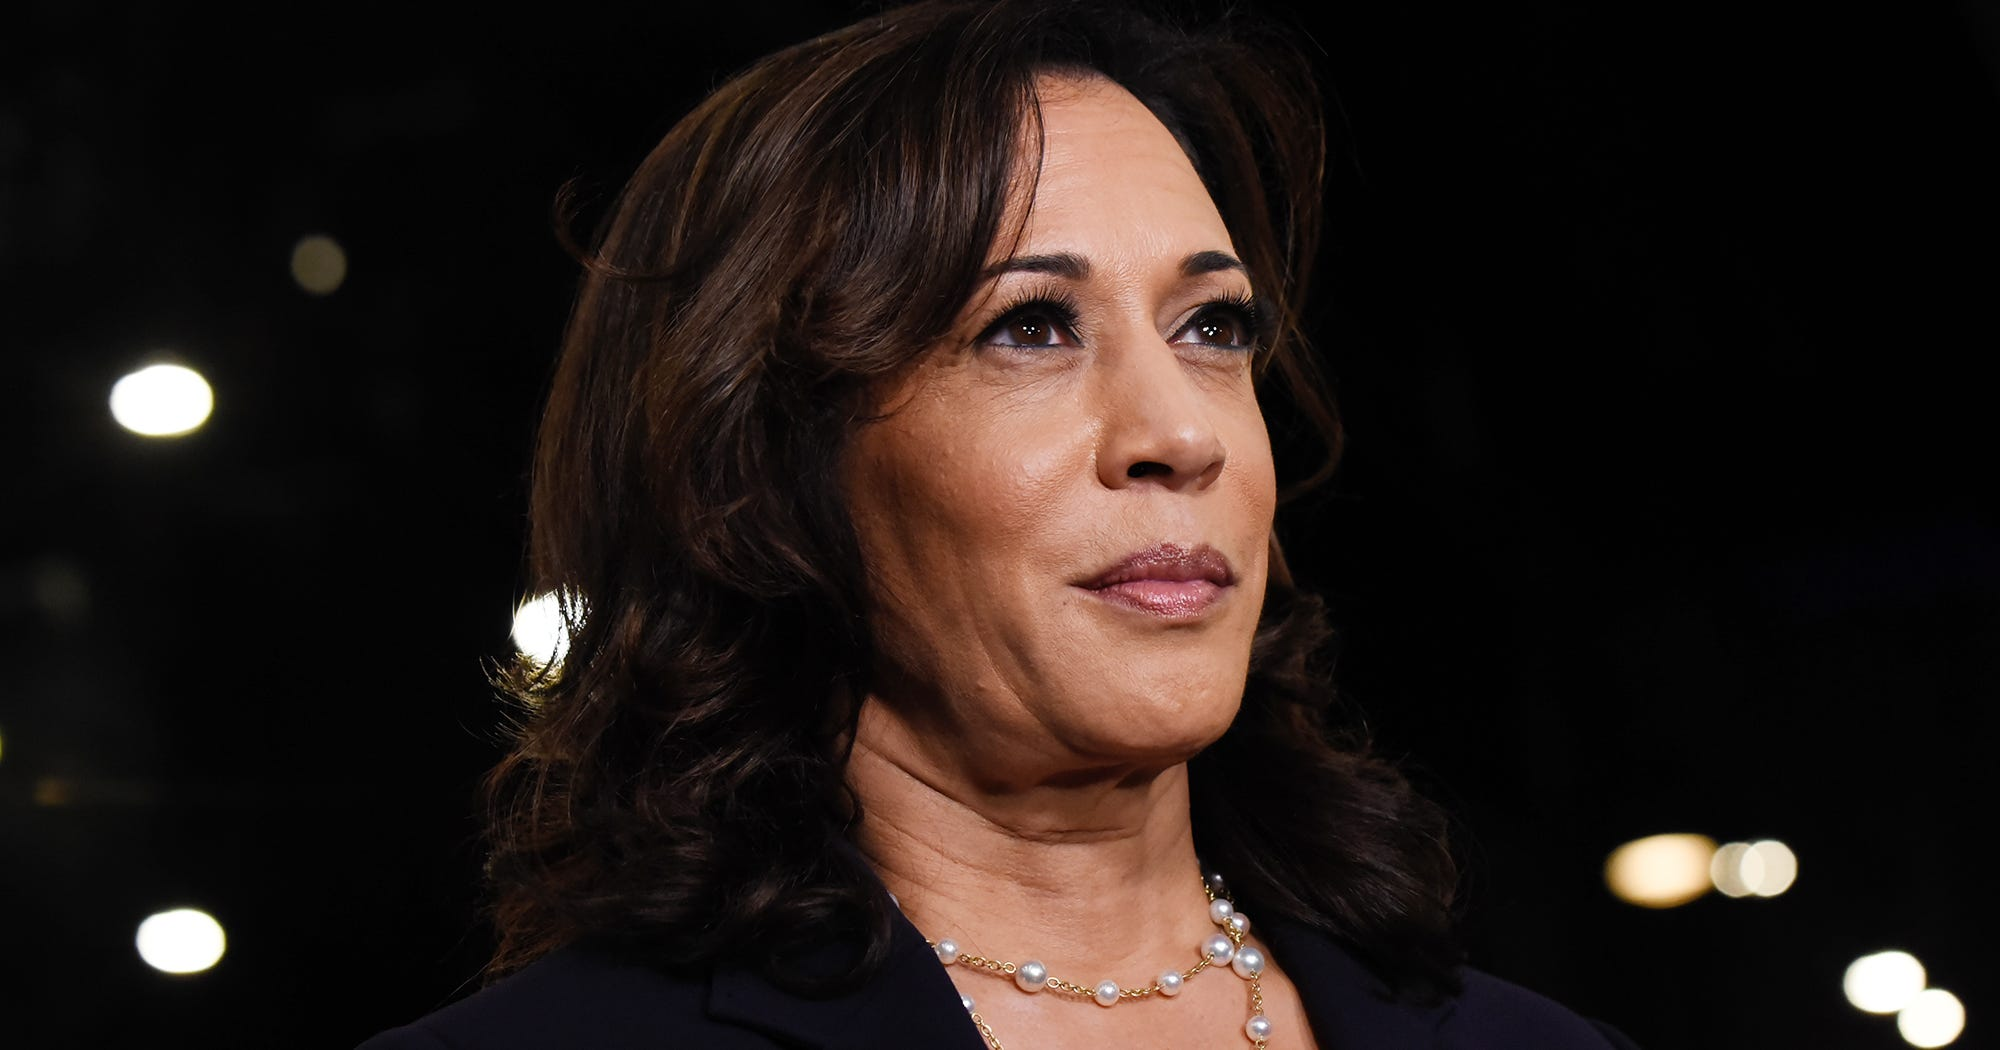 As President, Kamala Harris Says She Would Close The Nationwide Rape-Kit Backlog